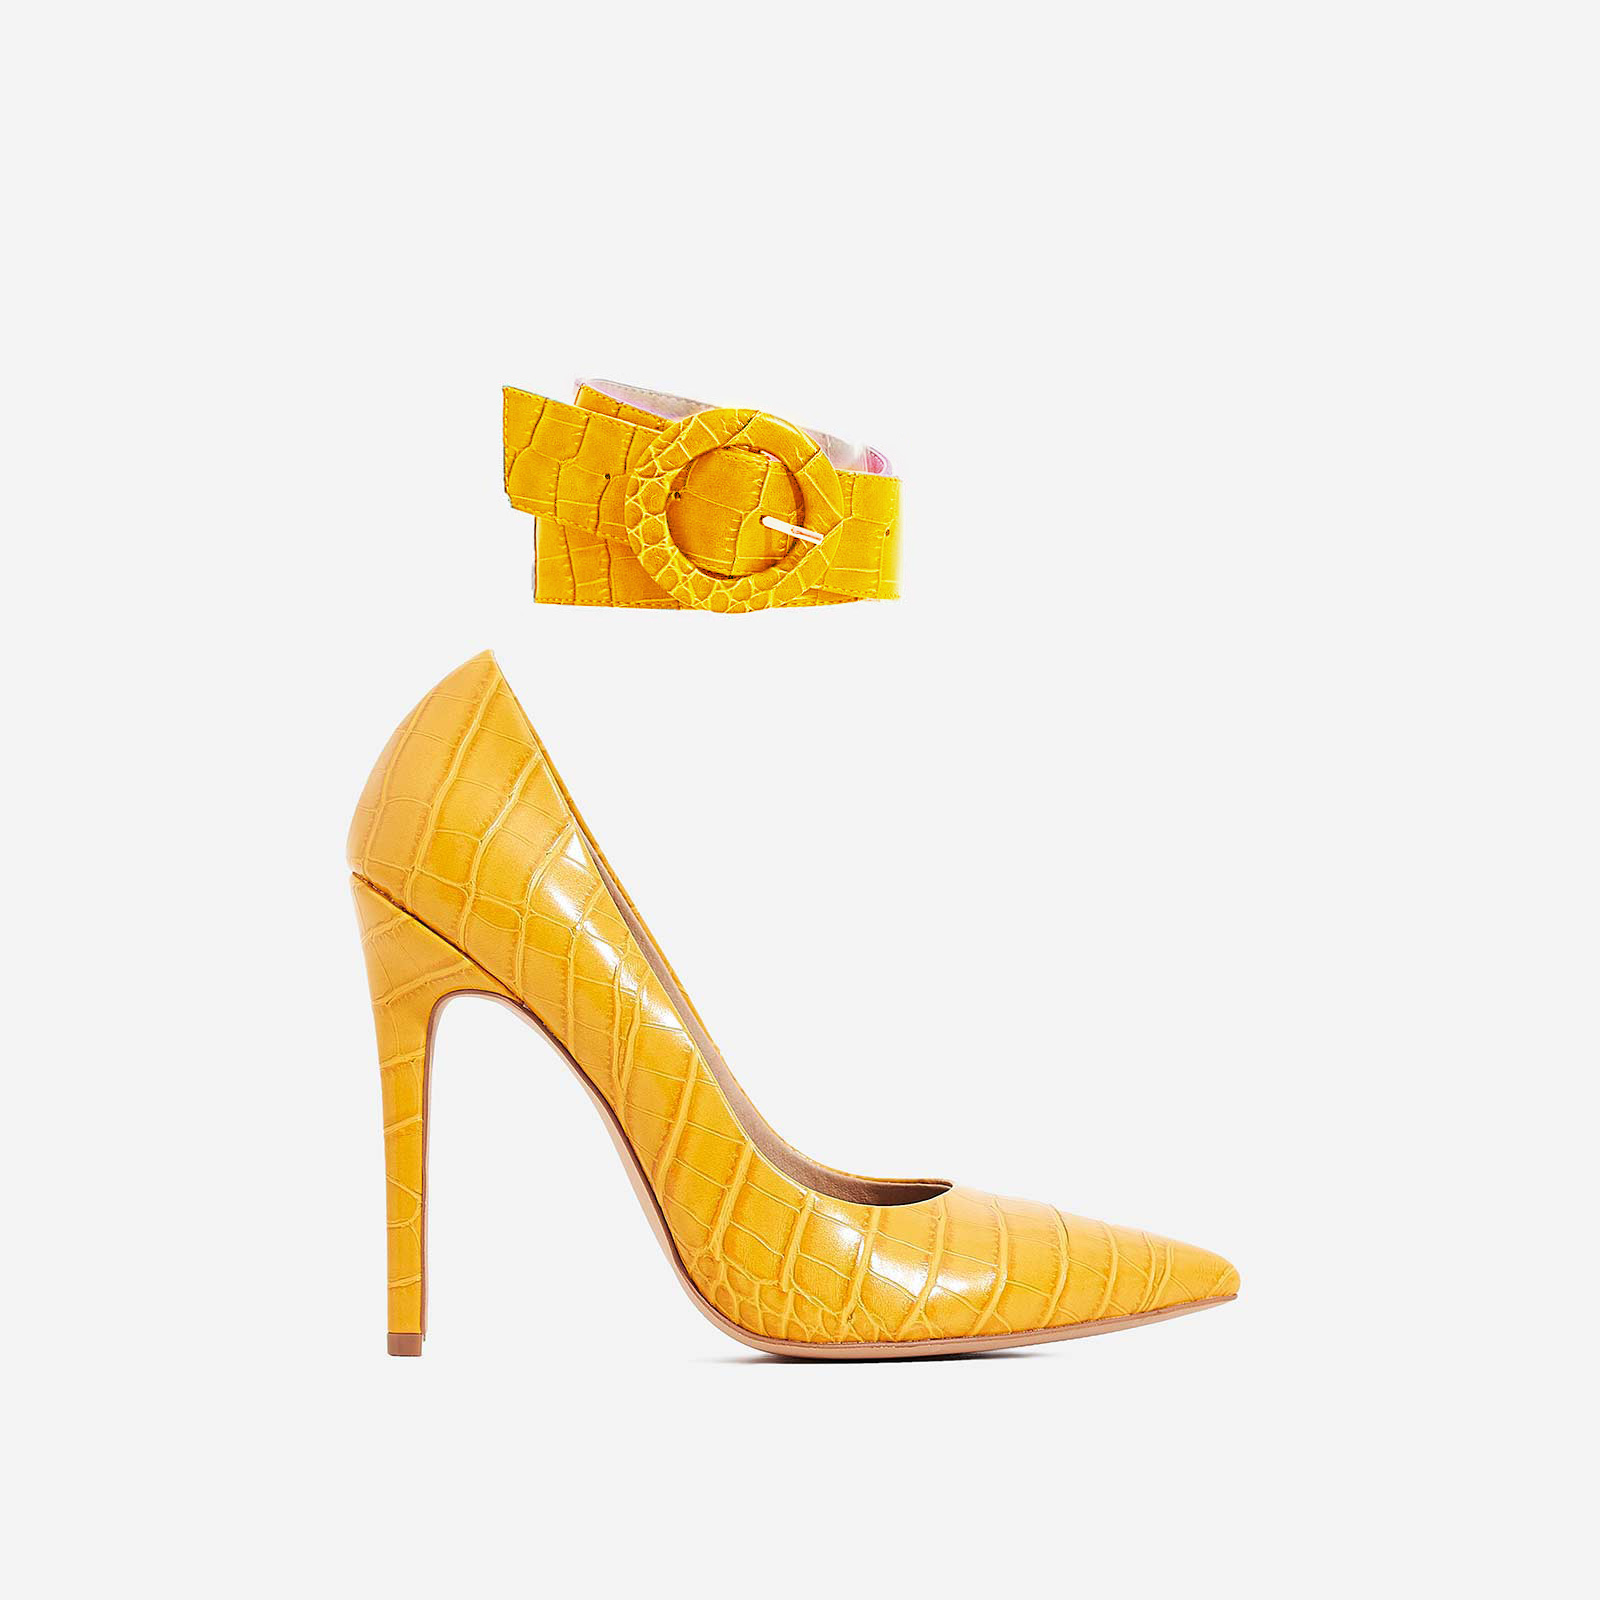 Stefano Ankle Strap Court Heel In Yellow Croc Print Faux Leather